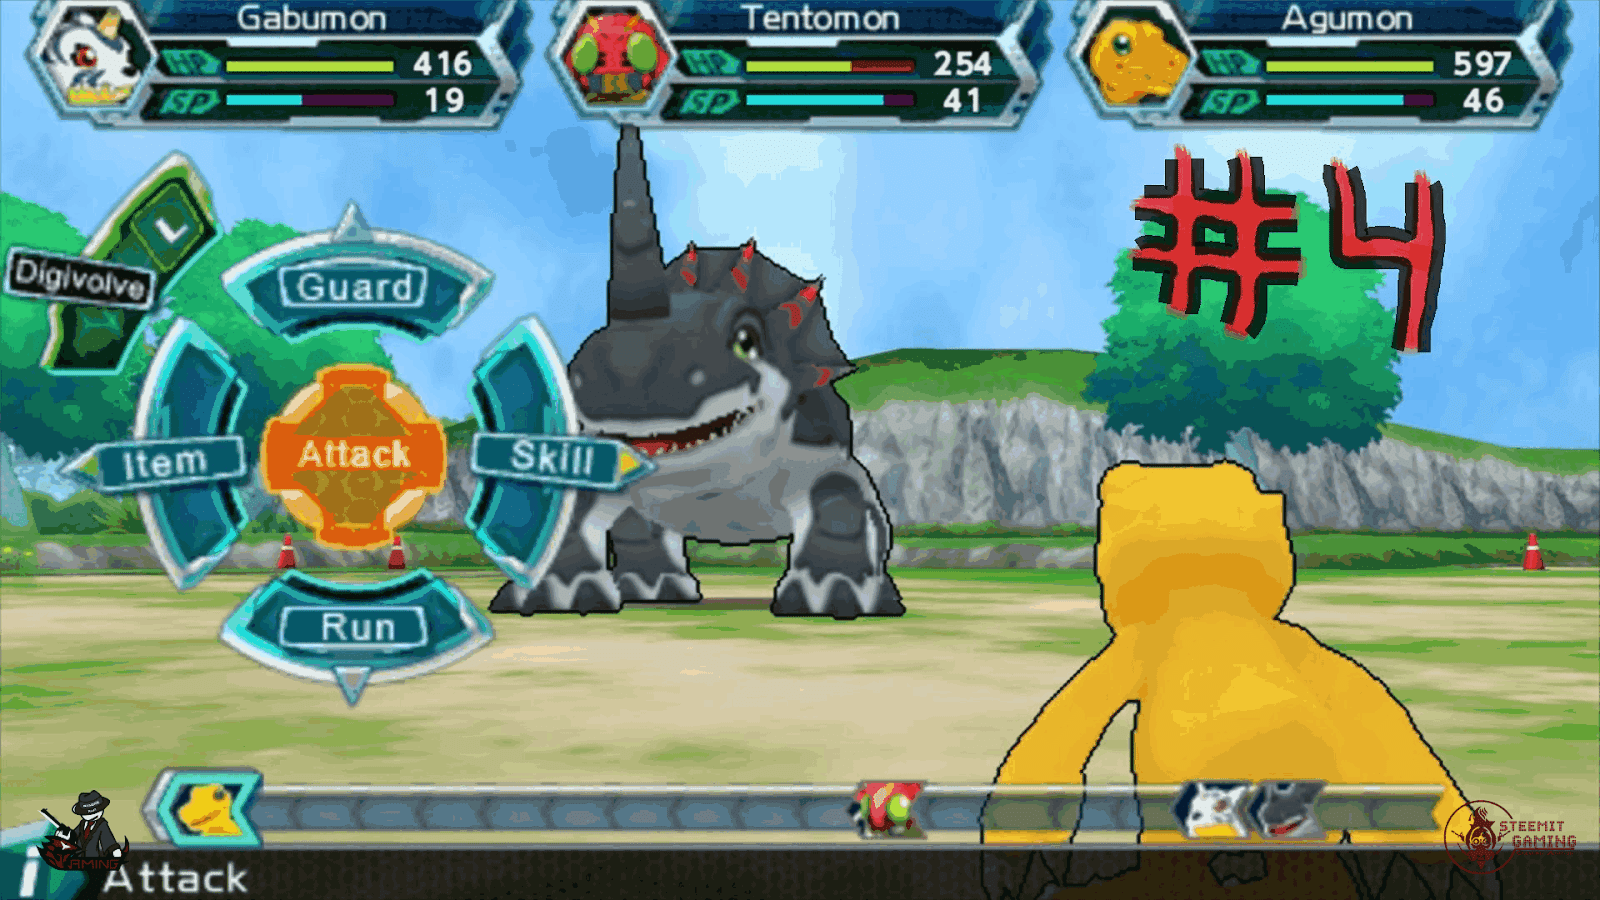 Digimon Adventure (English Patch) & Japan PSP ISP PPSSPP For Android